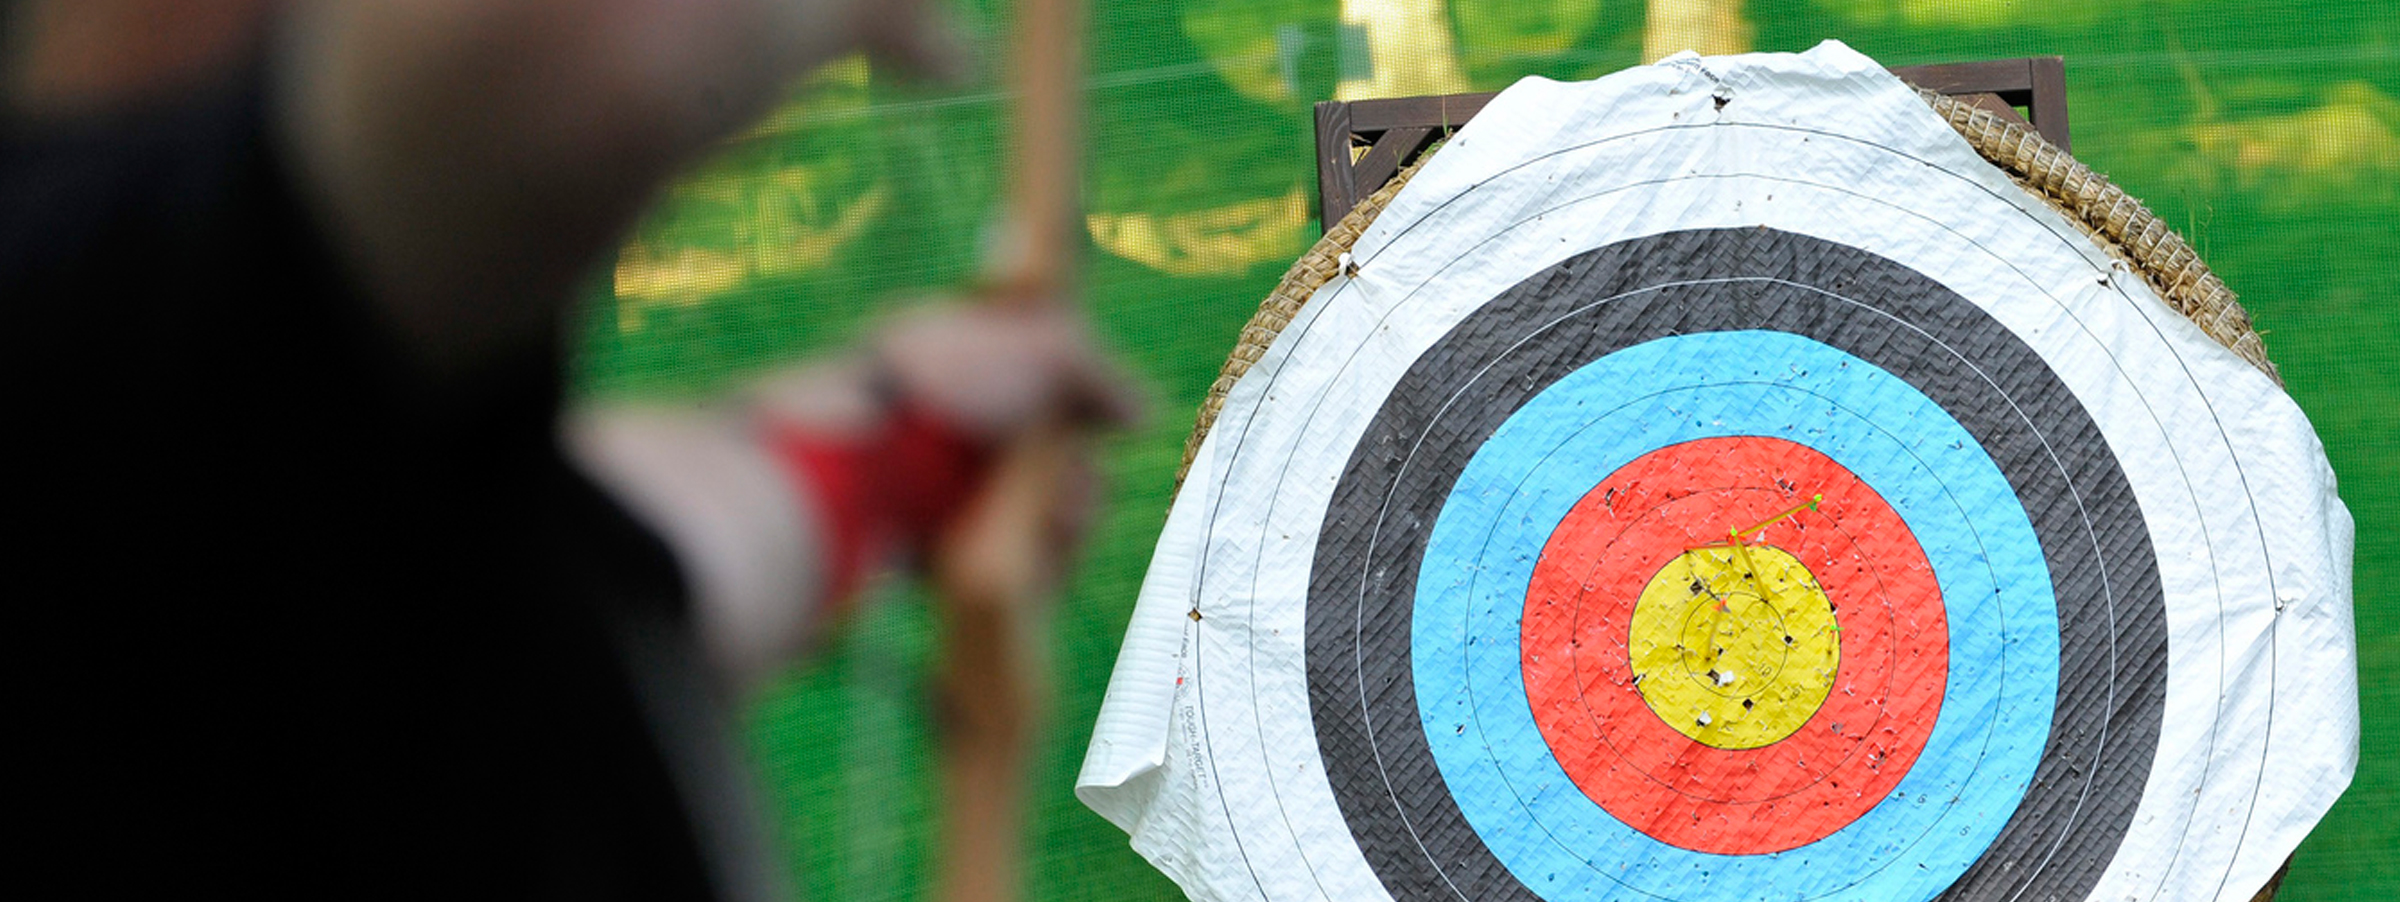 Andrea Lodges Archery Experience (1 hour)